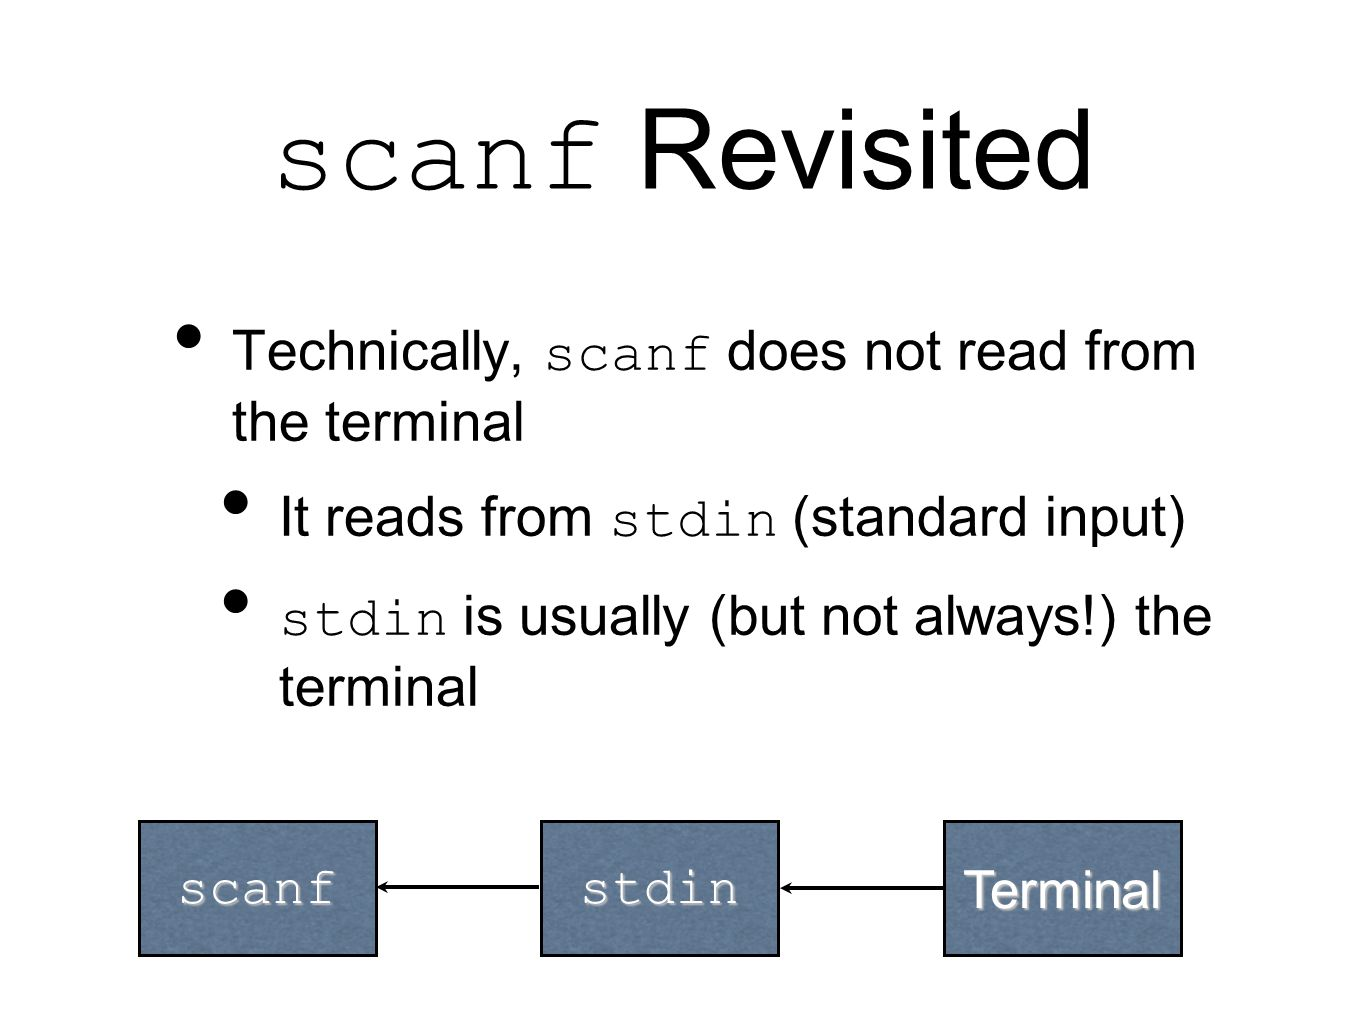 scanf Revisited Technically, scanf does not read from the terminal It reads from stdin (standard input) stdin is usually (but not always!) the terminal scanfstdinTerminal